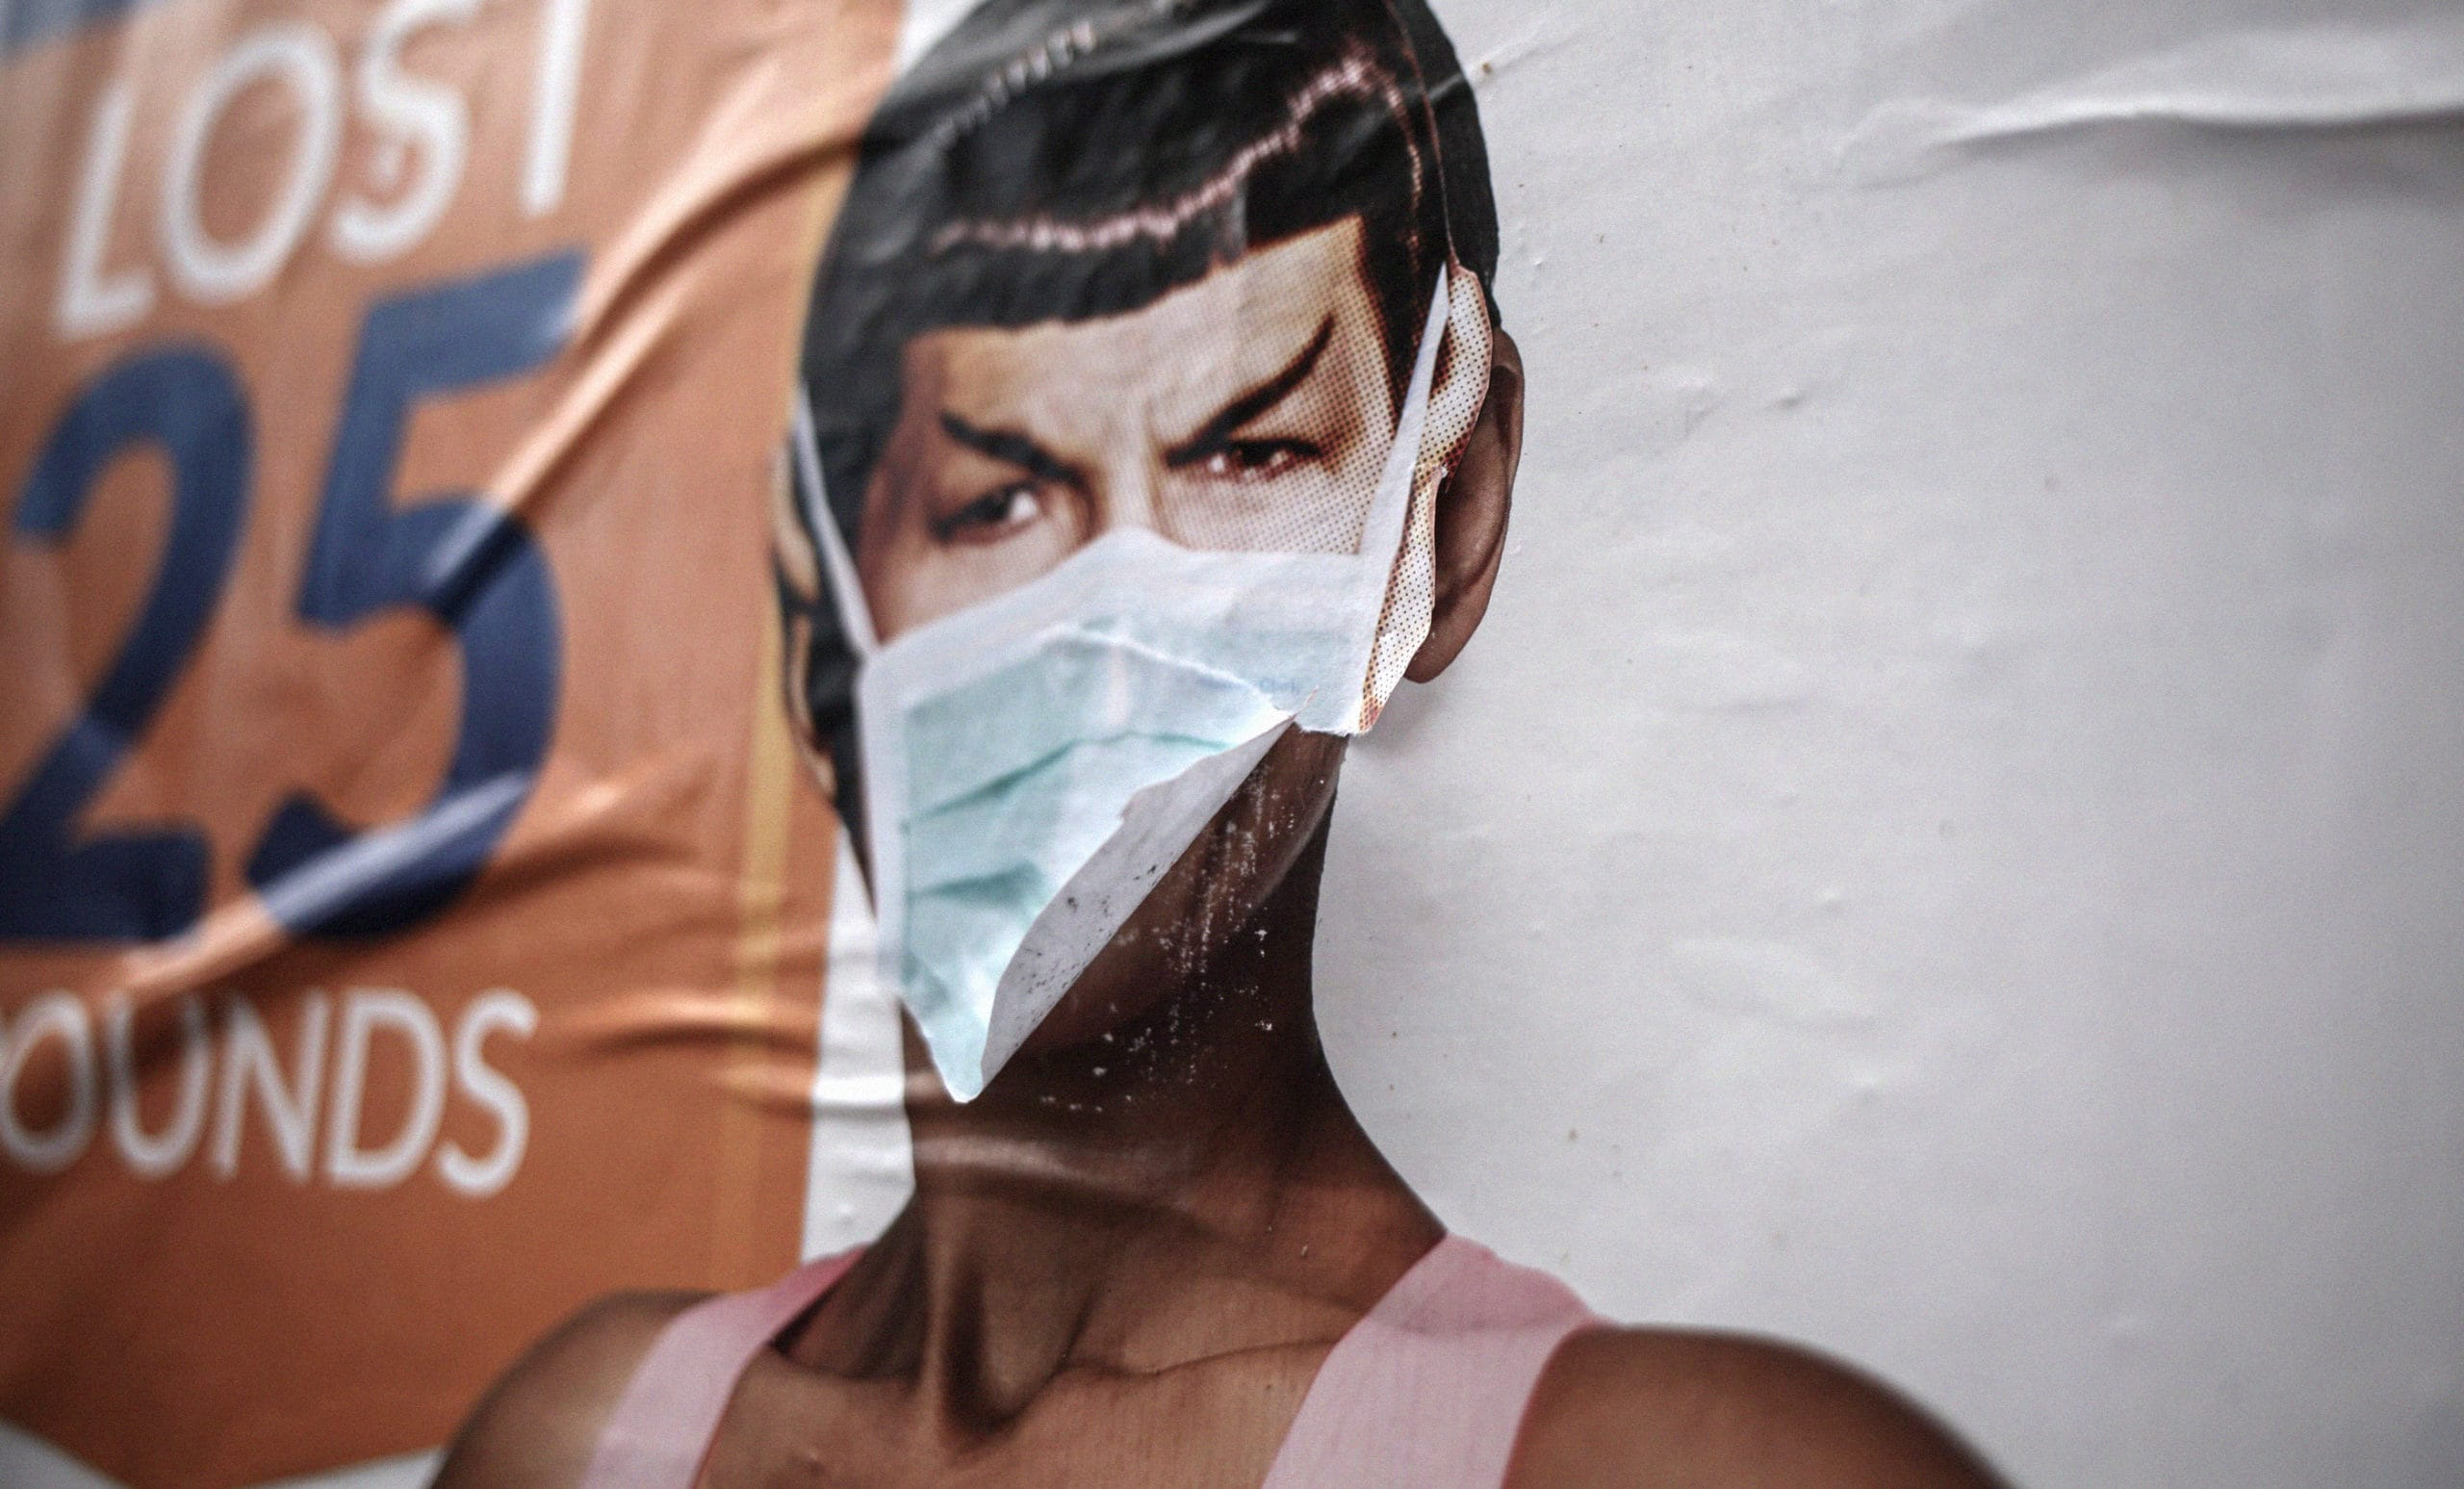 Poster bill on wall of Spock with surgical mask applied to face